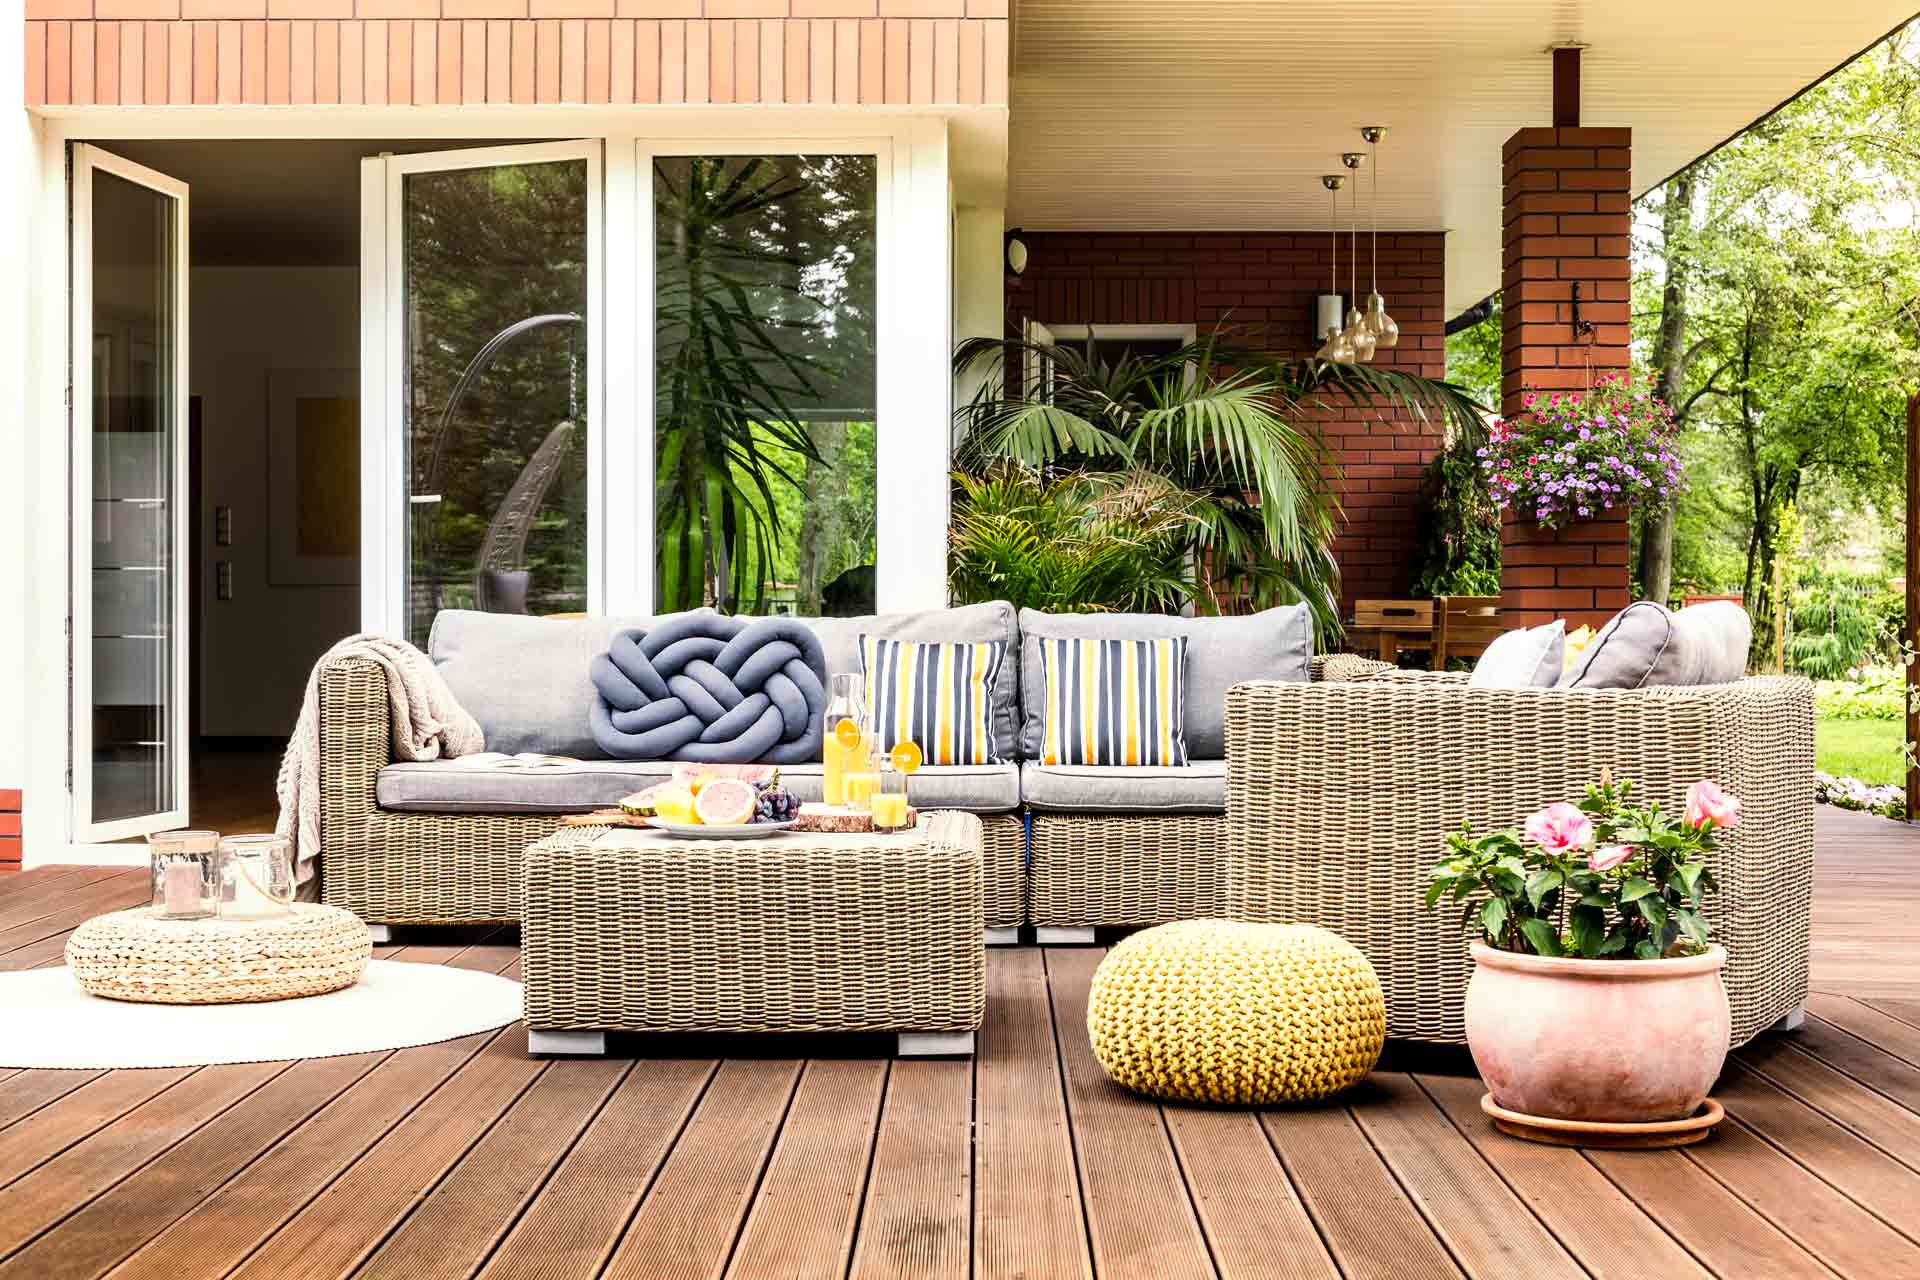 What is the Best Material to Use for Patio Doors?